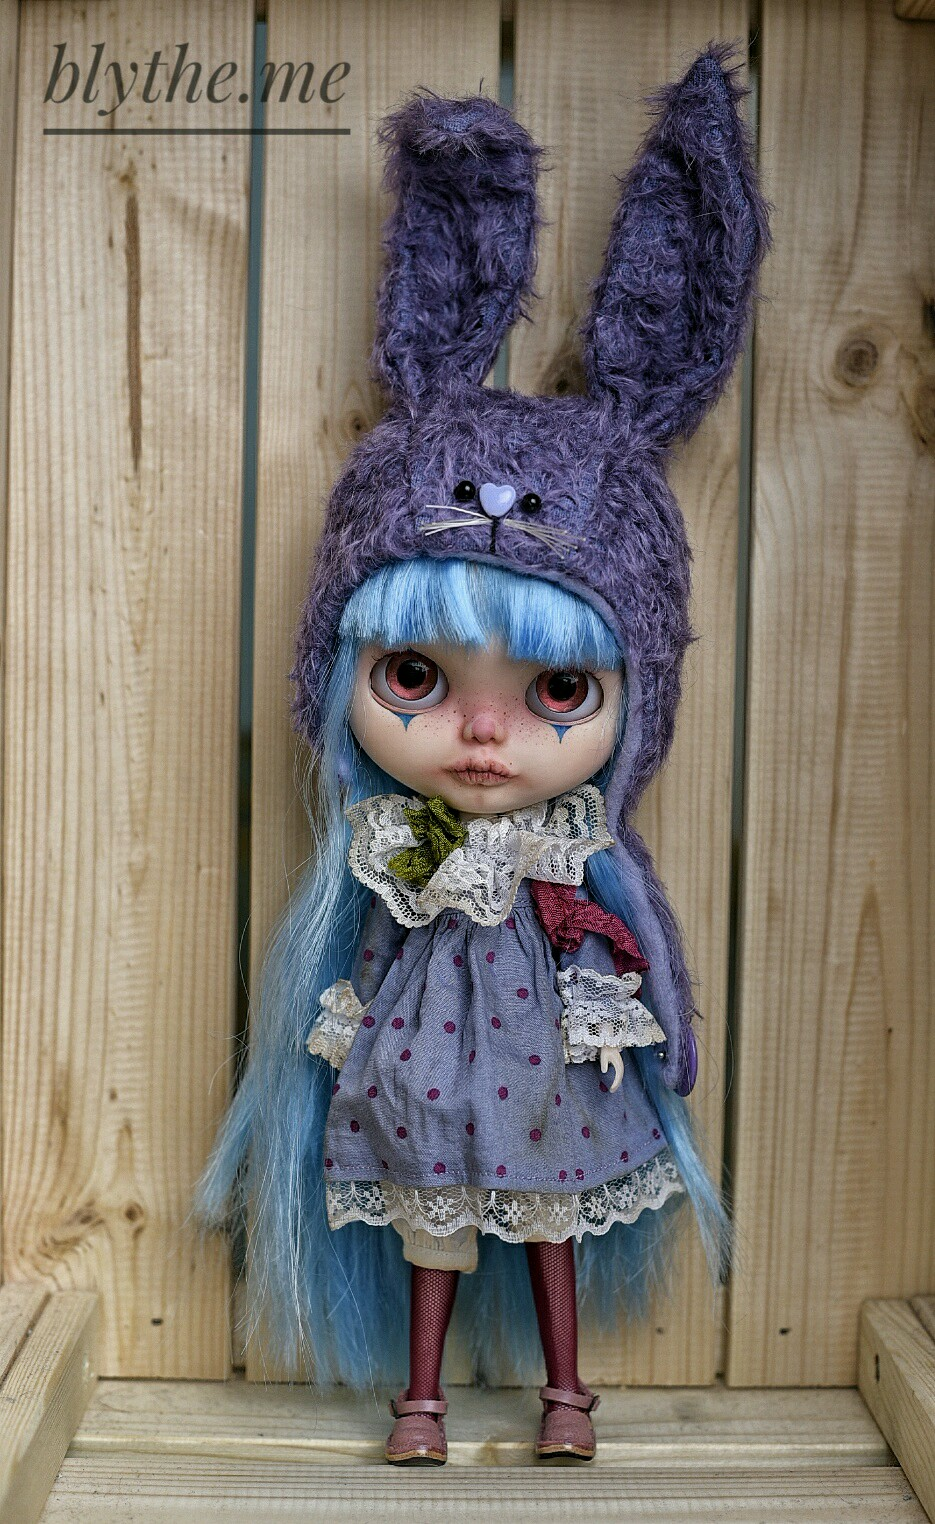 Turquoise Circus // Adopted // Blythe.me